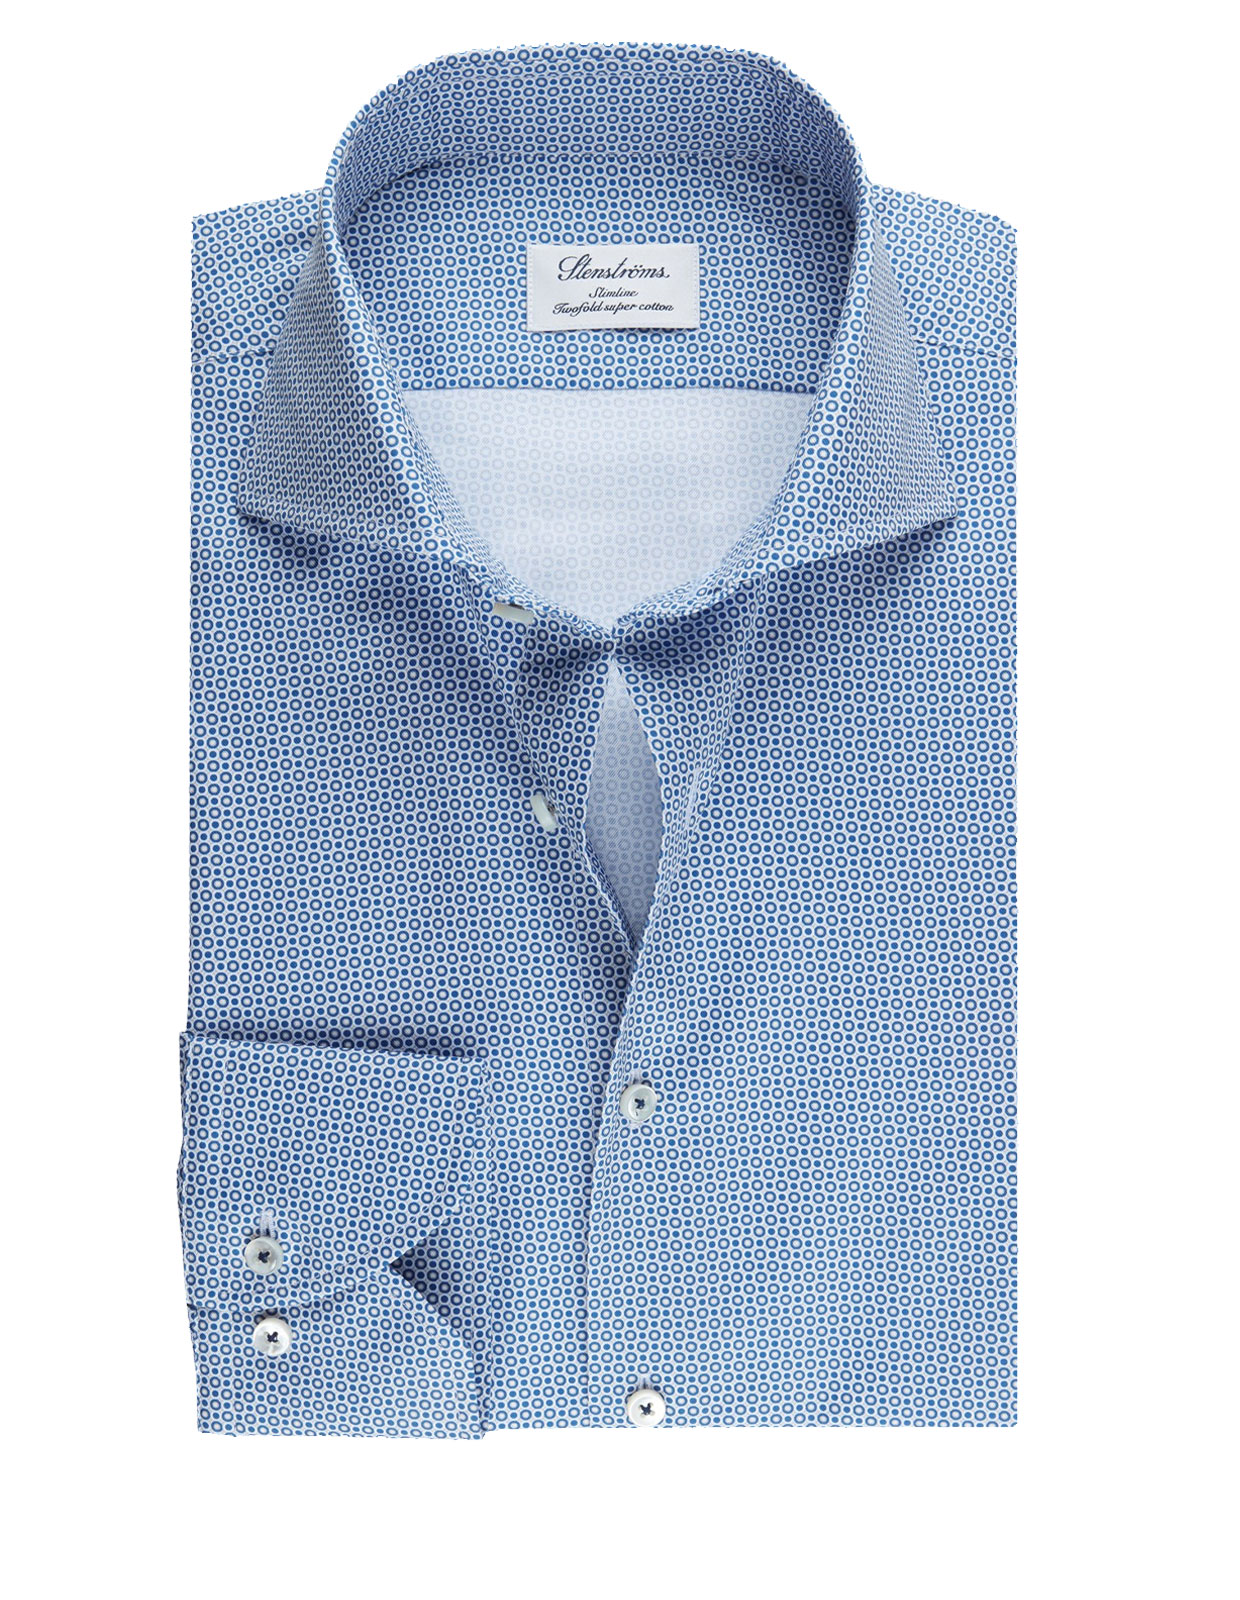 Slimline Shirt Geometric Patterned Blue